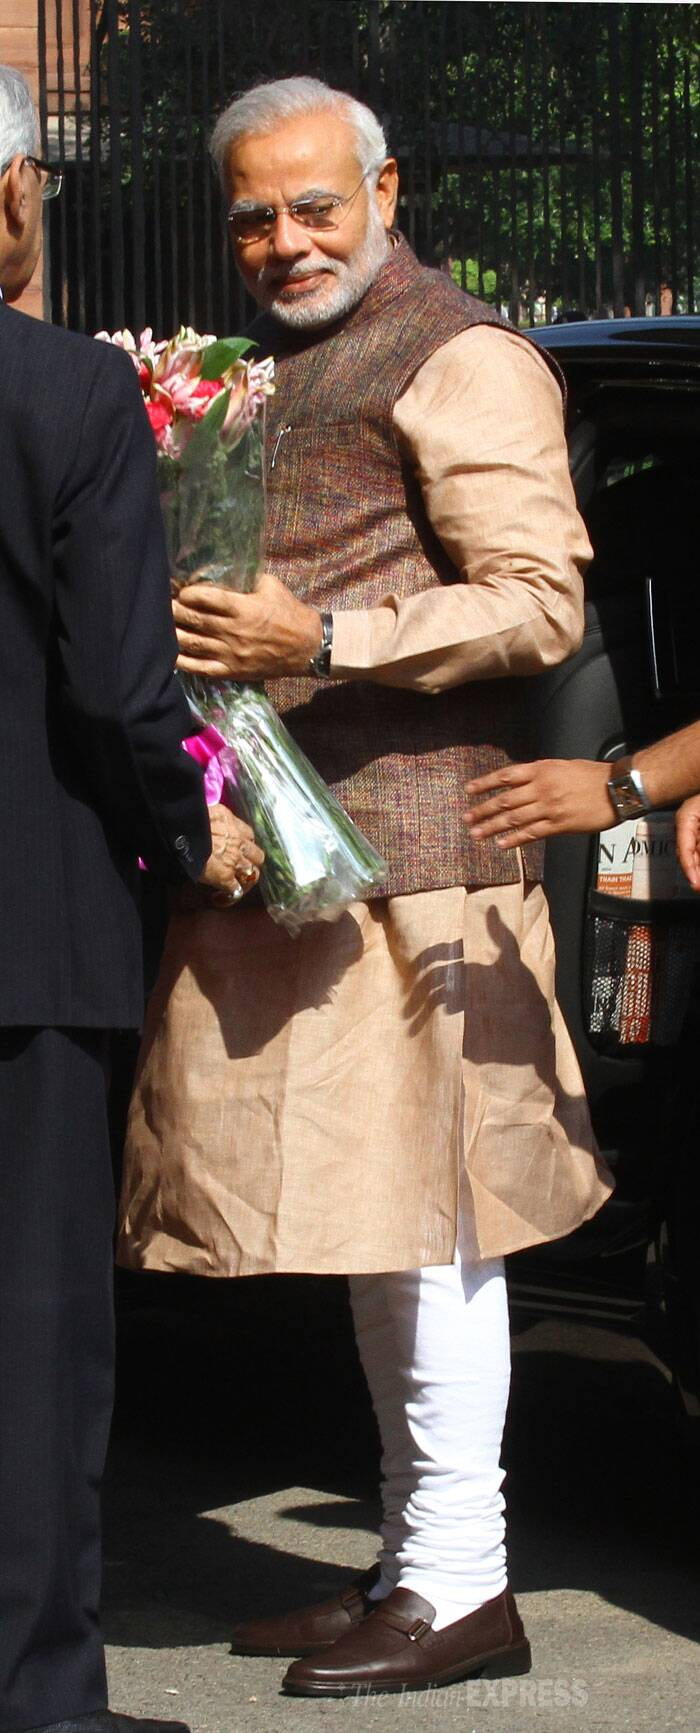 Narendra Modi was received at South block office of the PMO by newly appointed Principal Secretary Nripendra Mishra and some other officials. (Source: Express photo by Neeraj Priyadarshi)